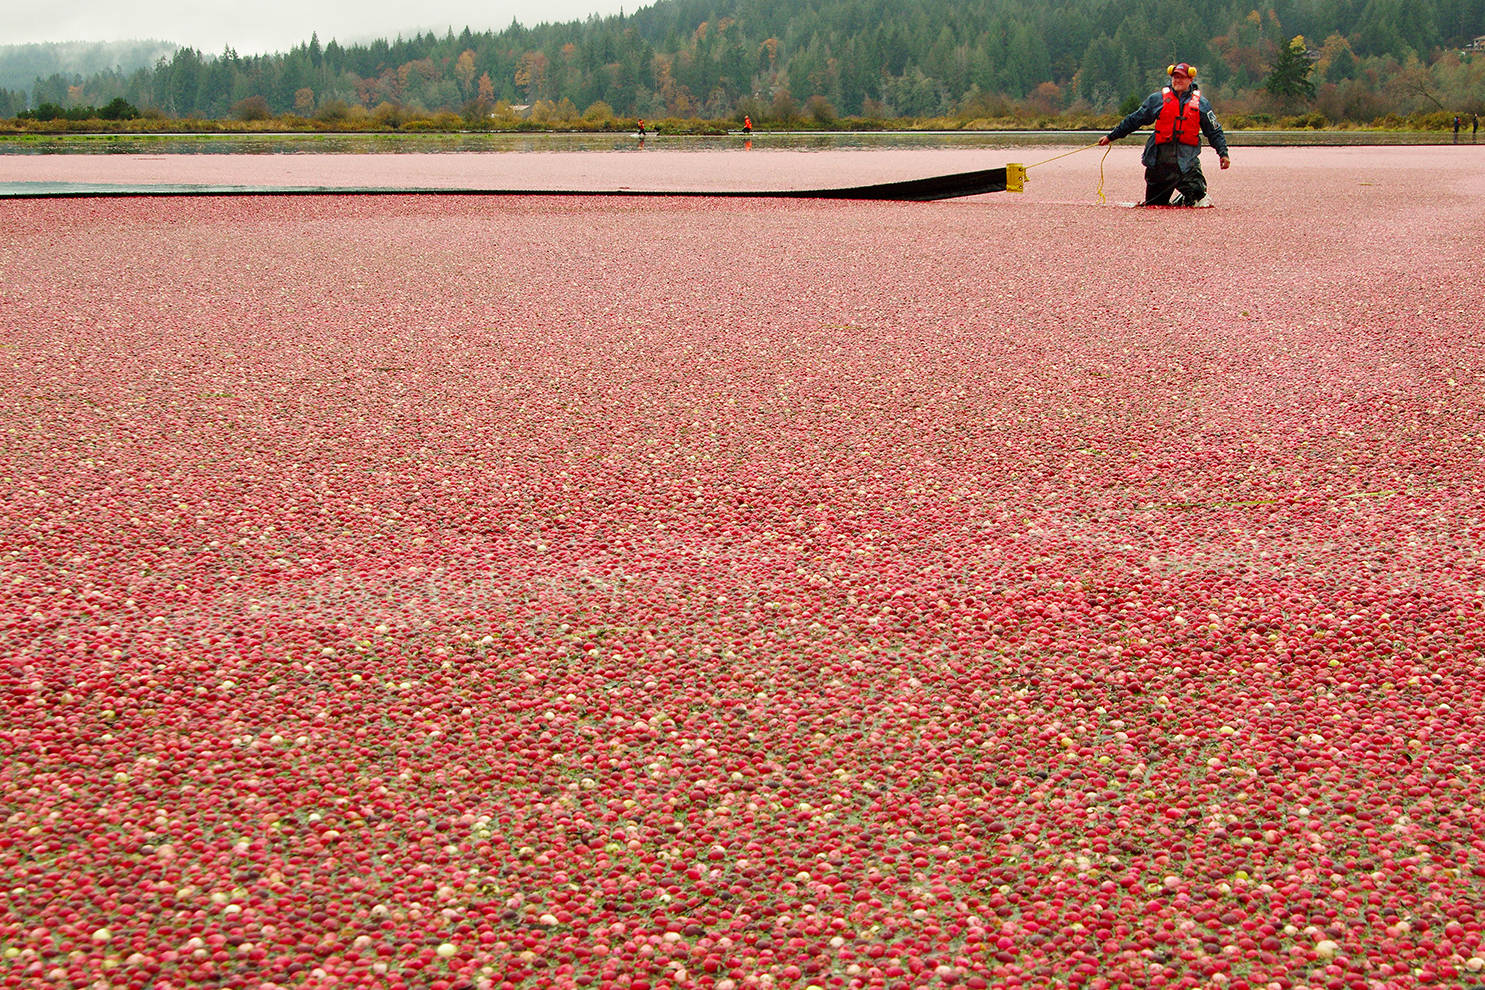 Grant Keefer, owner of Yellow Point Cranberries, pulls a boom into position as he rounds up cranberries floating atop the water in a flooded field at the farm located in Yellow Point south of Nanaimo. (Chris Bush/Nanaimo News Bulletin)